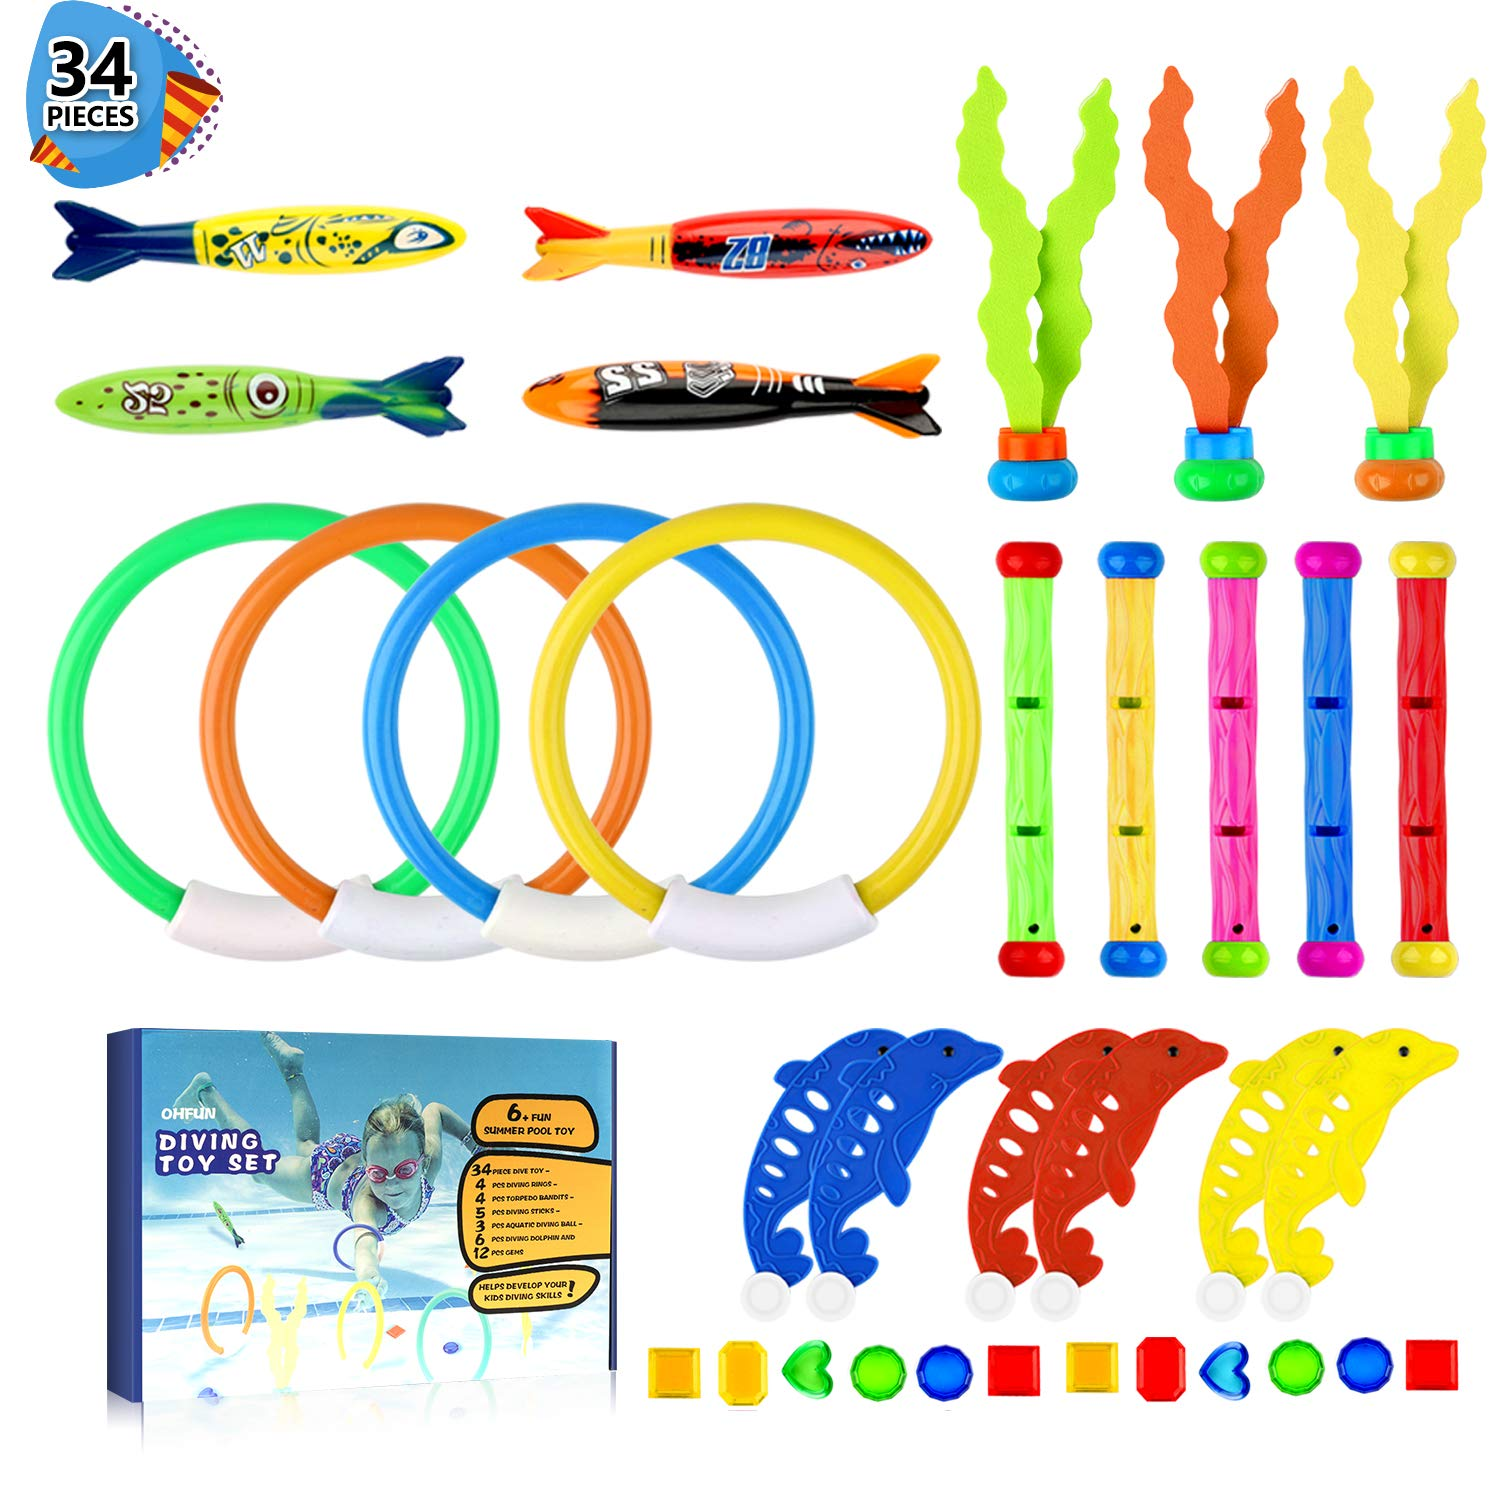 Baby Products Bath Toys Underwater Diving Pool Toys 19PCS Set Diving Rings Diving Toypedo Diving Sticks Aquatic Dive Balls Swimming Fish Swimming Pool Toys For Kids With Carrying Bag